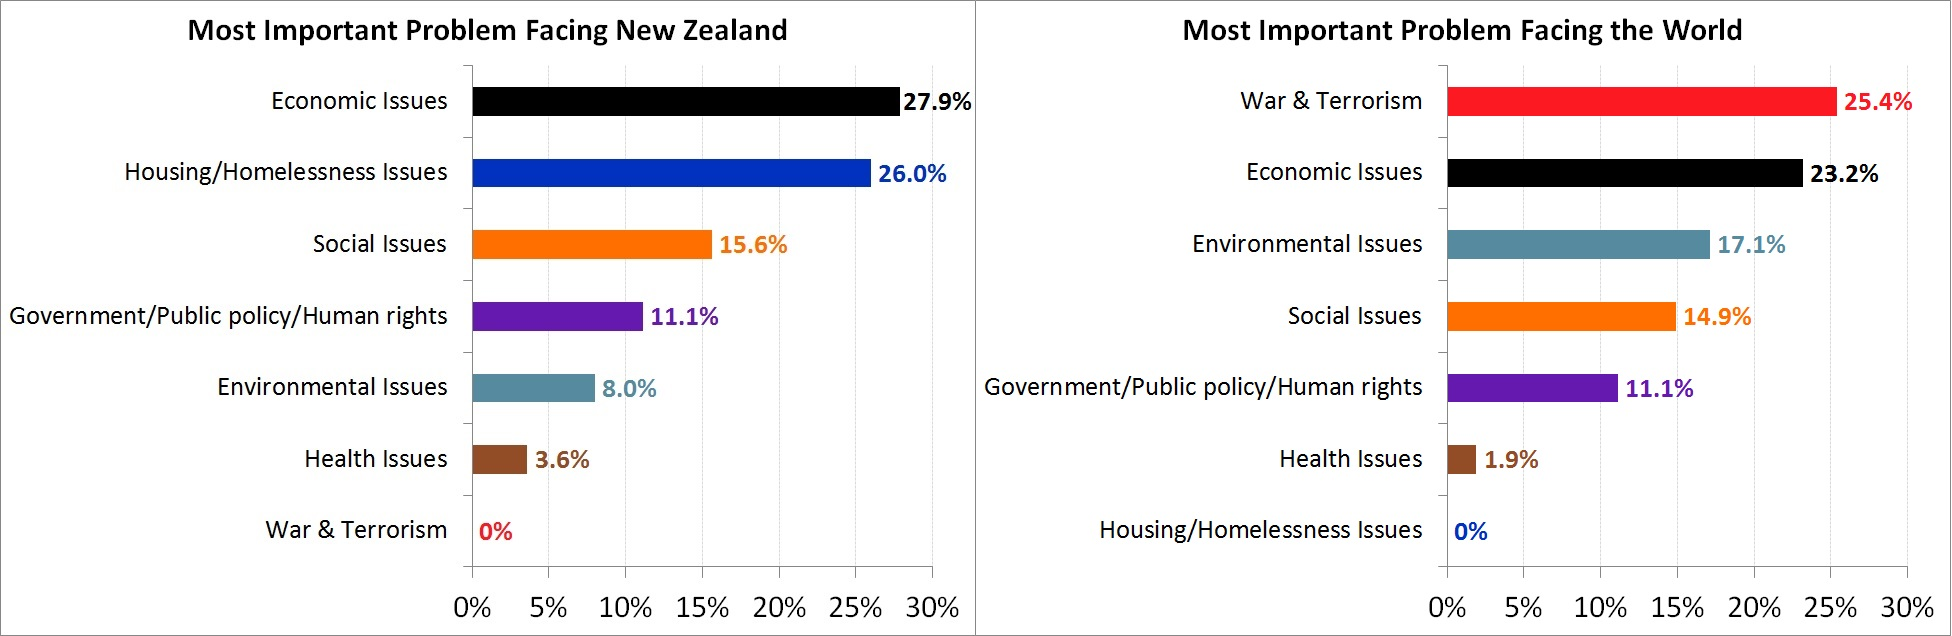 Most Important Problems Facing New Zealand and The World - August 2017